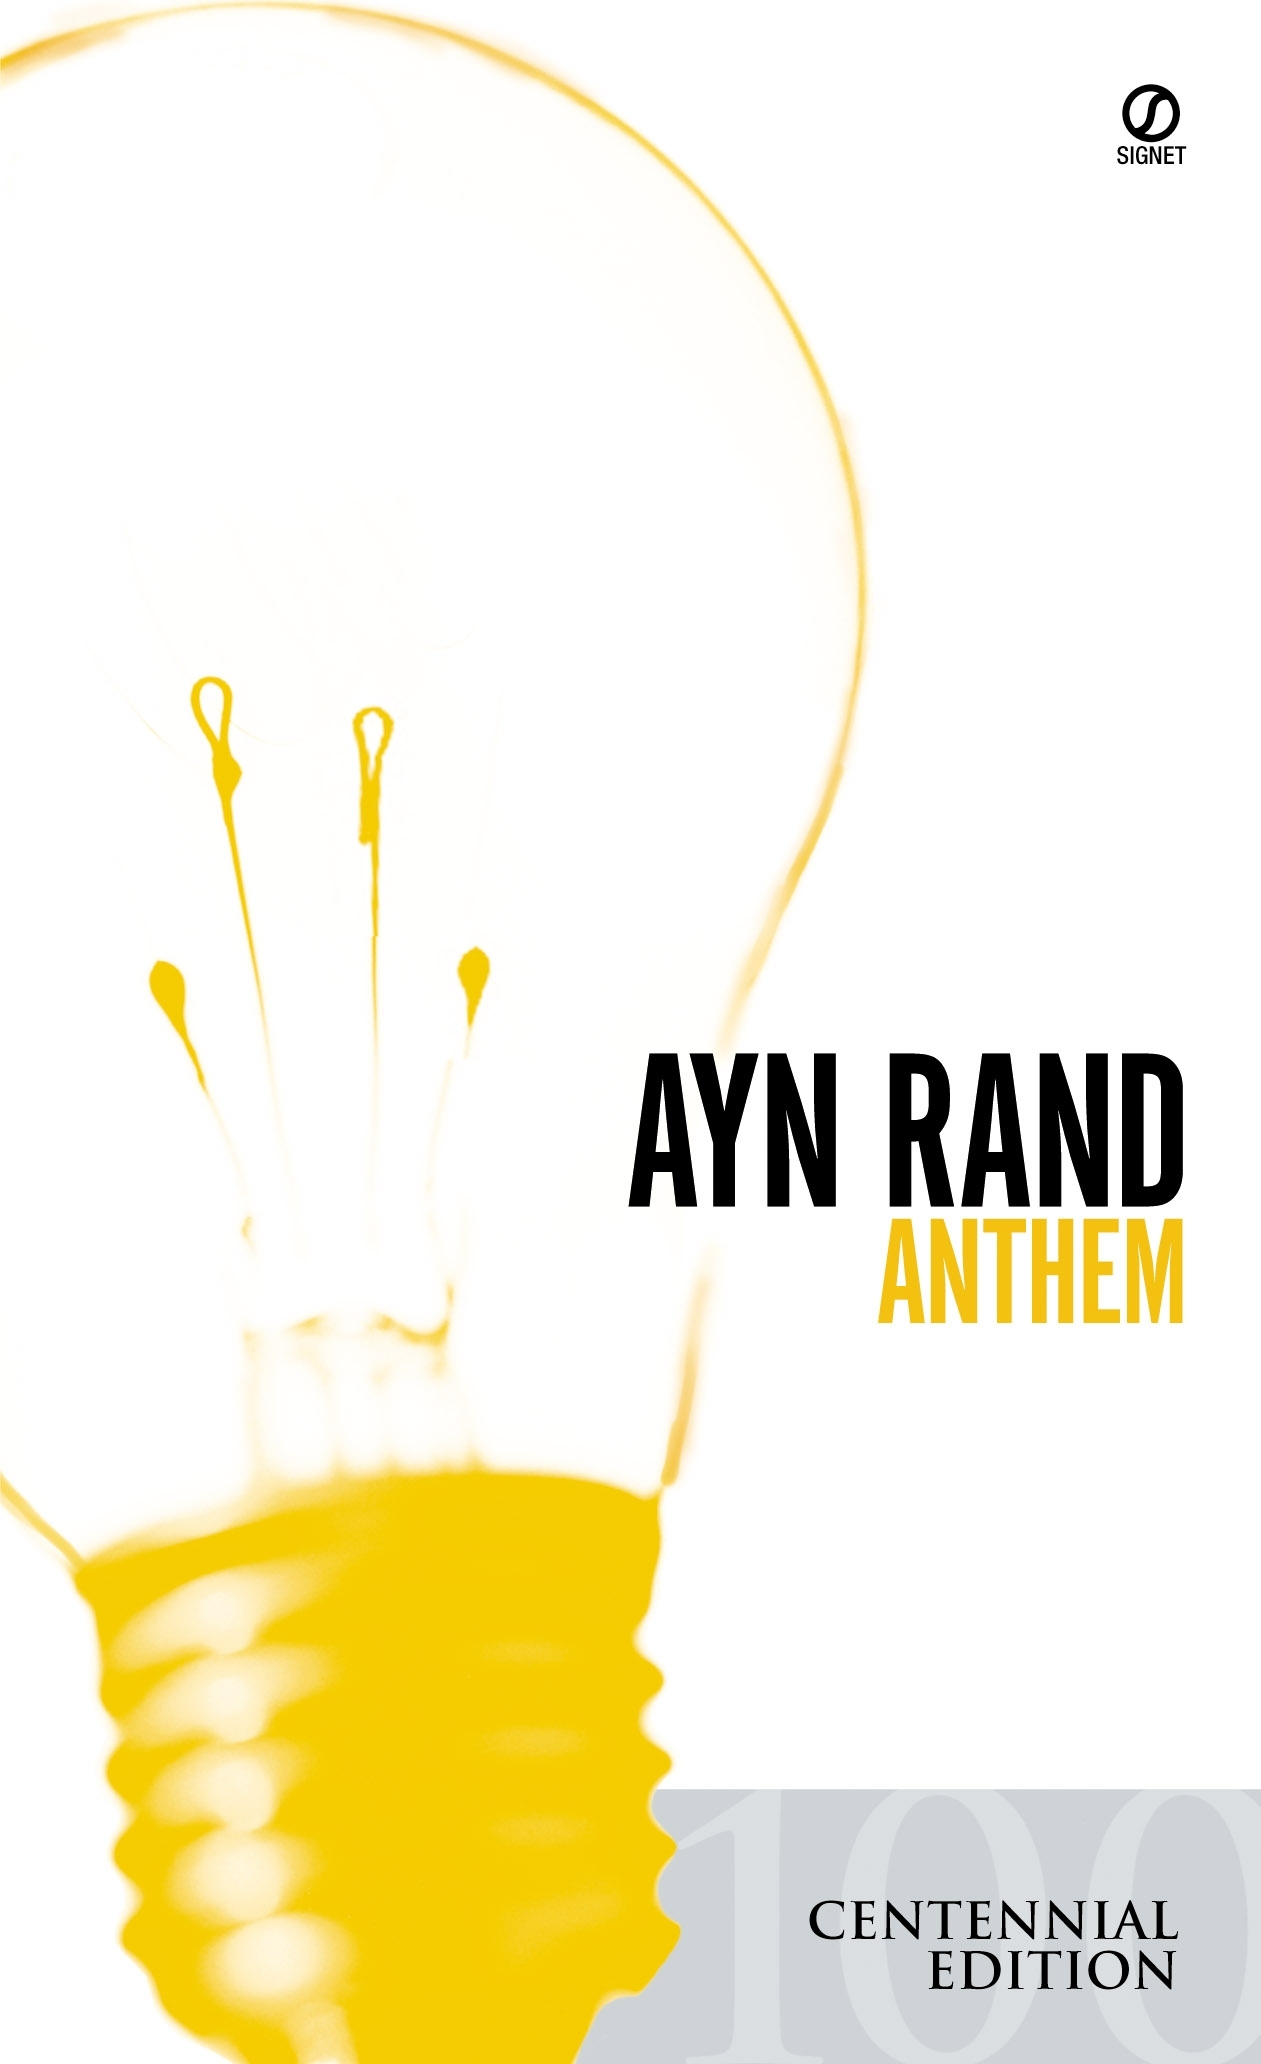 the philosophy of ayn rand in her literary work anthem Ayn rand's anthem is a unique work of literature the style and literary form of anthem transcript audio share rand summarizes her philosophy launch lesson save lesson launch lesson save lesson 1h 7m lesson the morality of freedom.